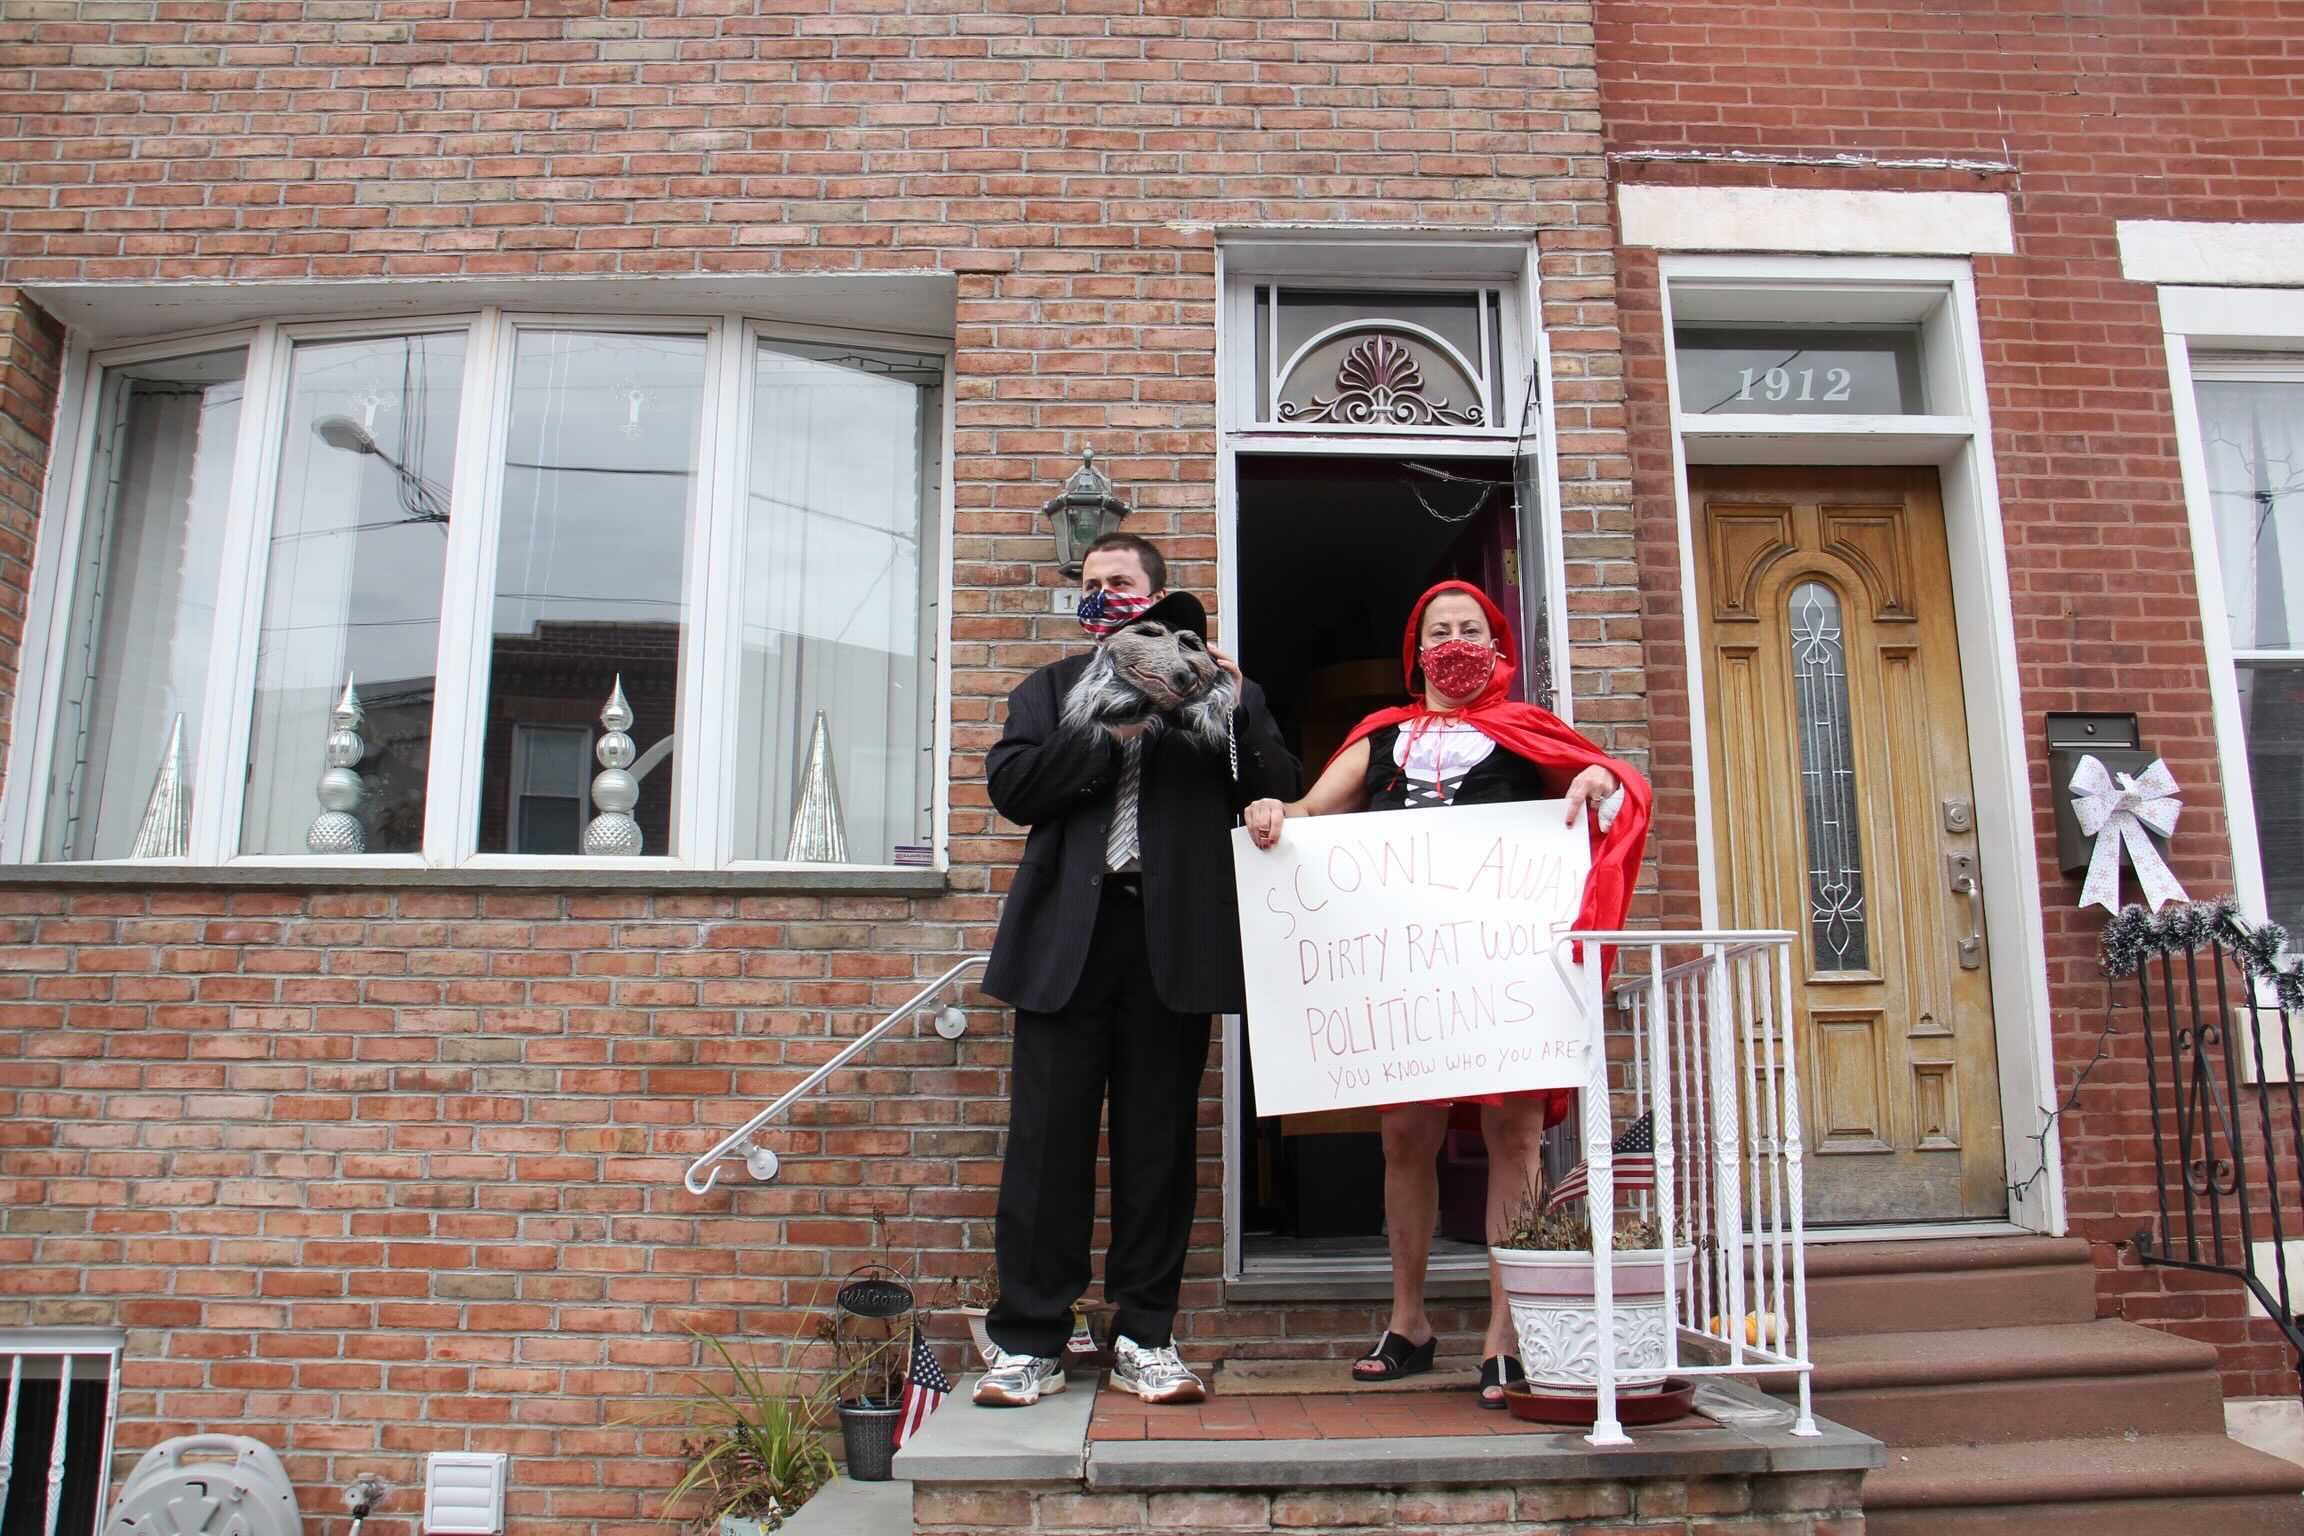 Maureen Fratantoni, dressed as Little Red Riding Hood, and her son, son James Fratantoni, the big bad wolf-rat, show support for those protesting the cancellation of the Mummers Parade from their front stoop on 11th Street.